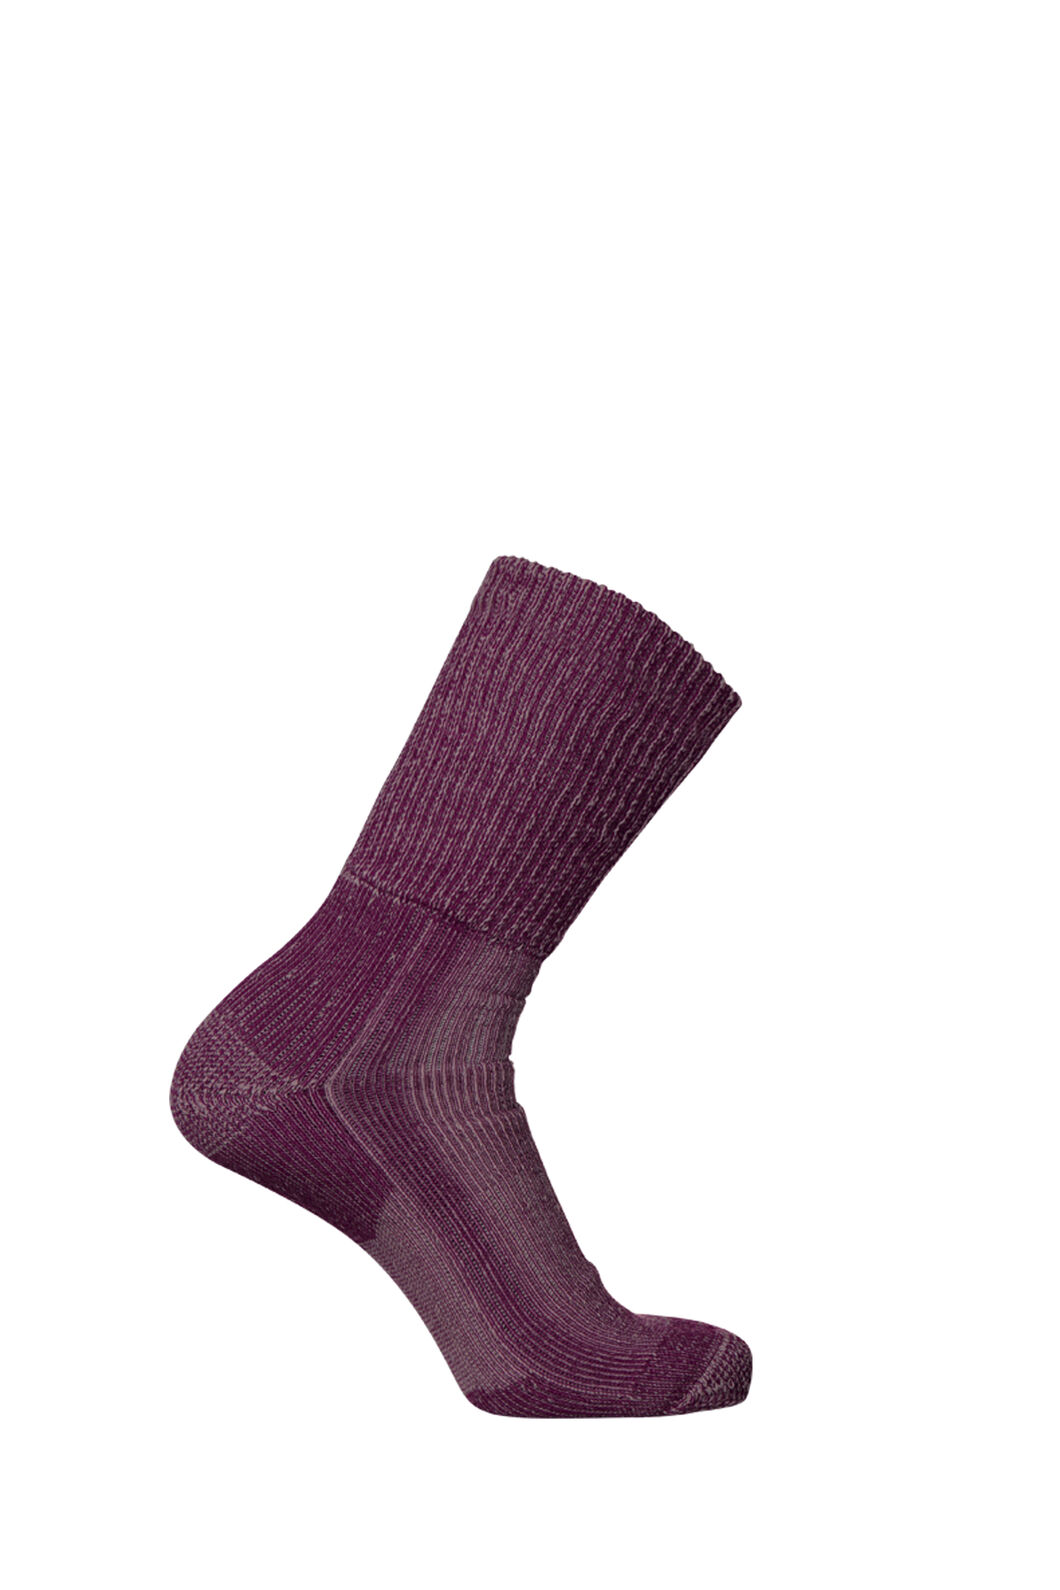 Macpac Winter Hiker Socks, Magenta, hi-res